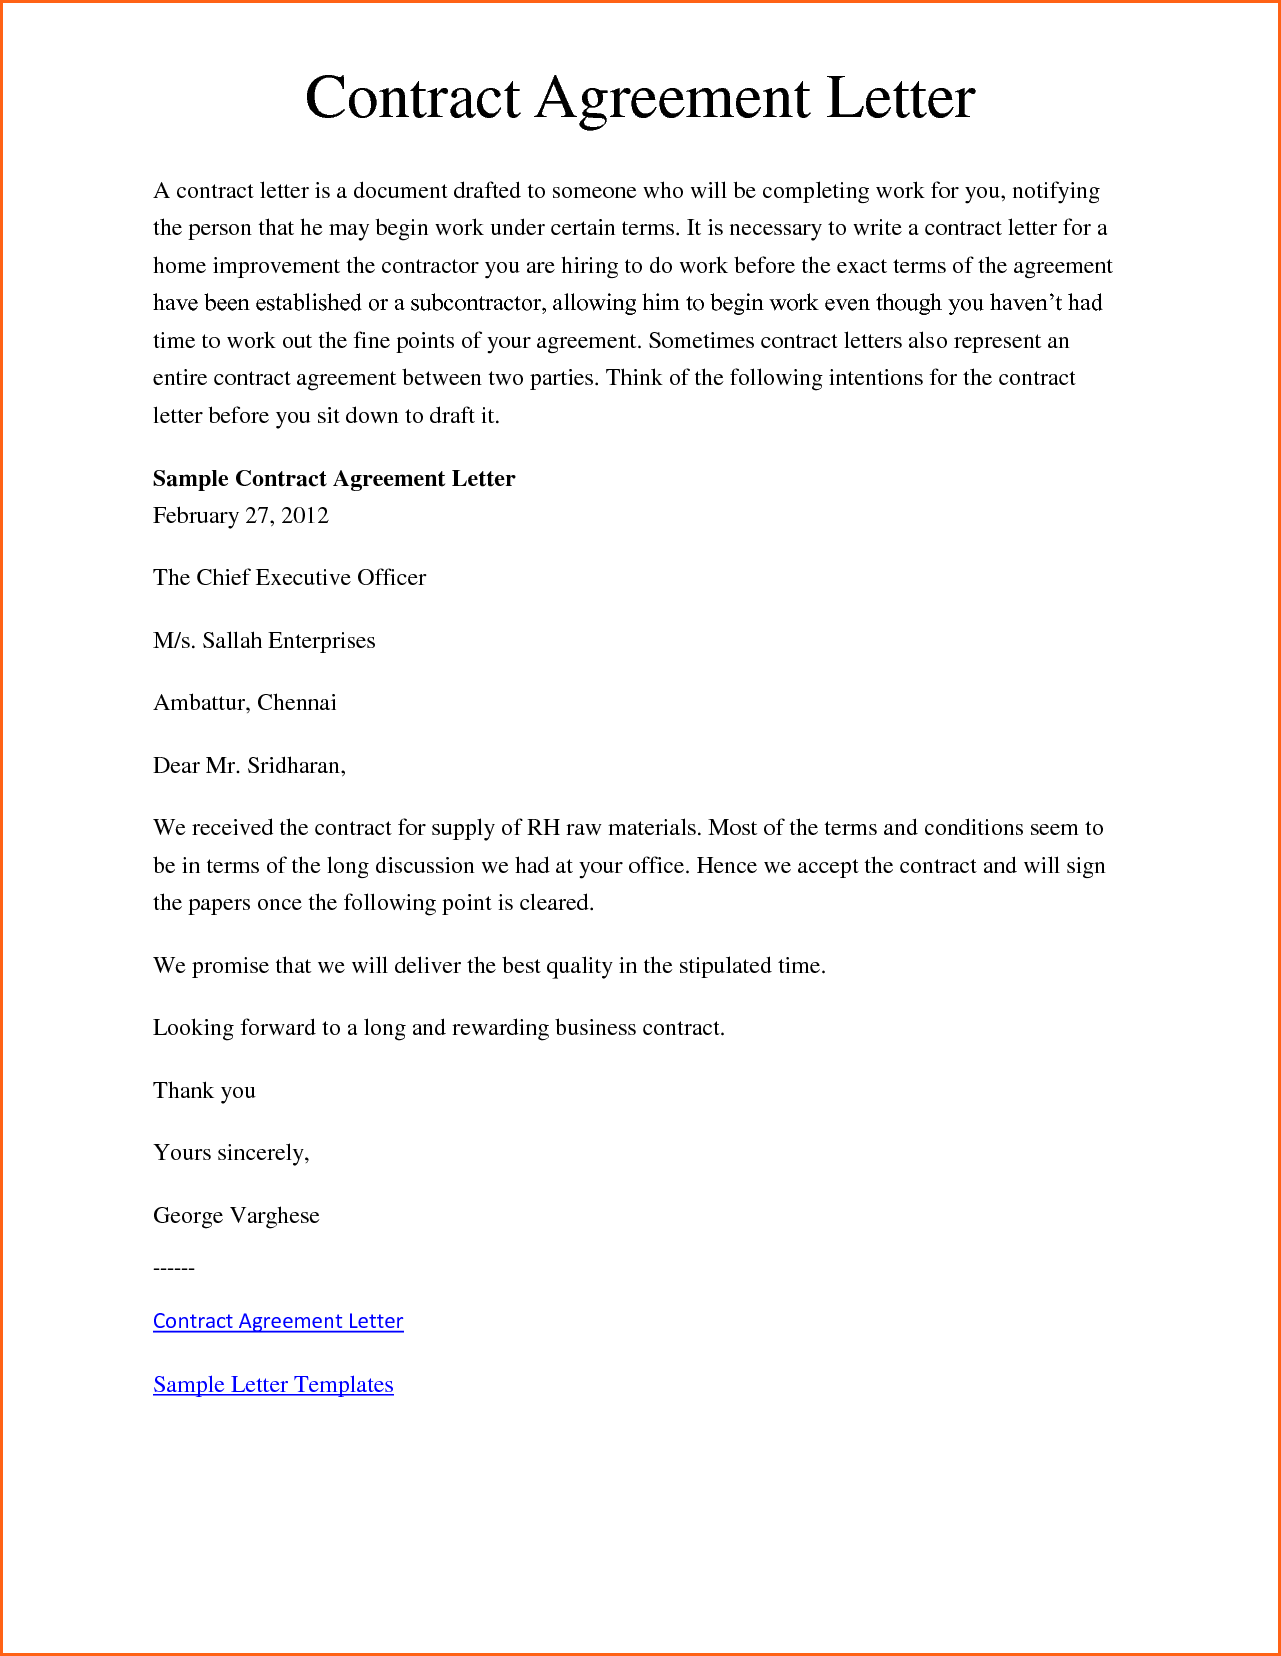 Sample Letter Agreement Business Payment Contract Template  Home